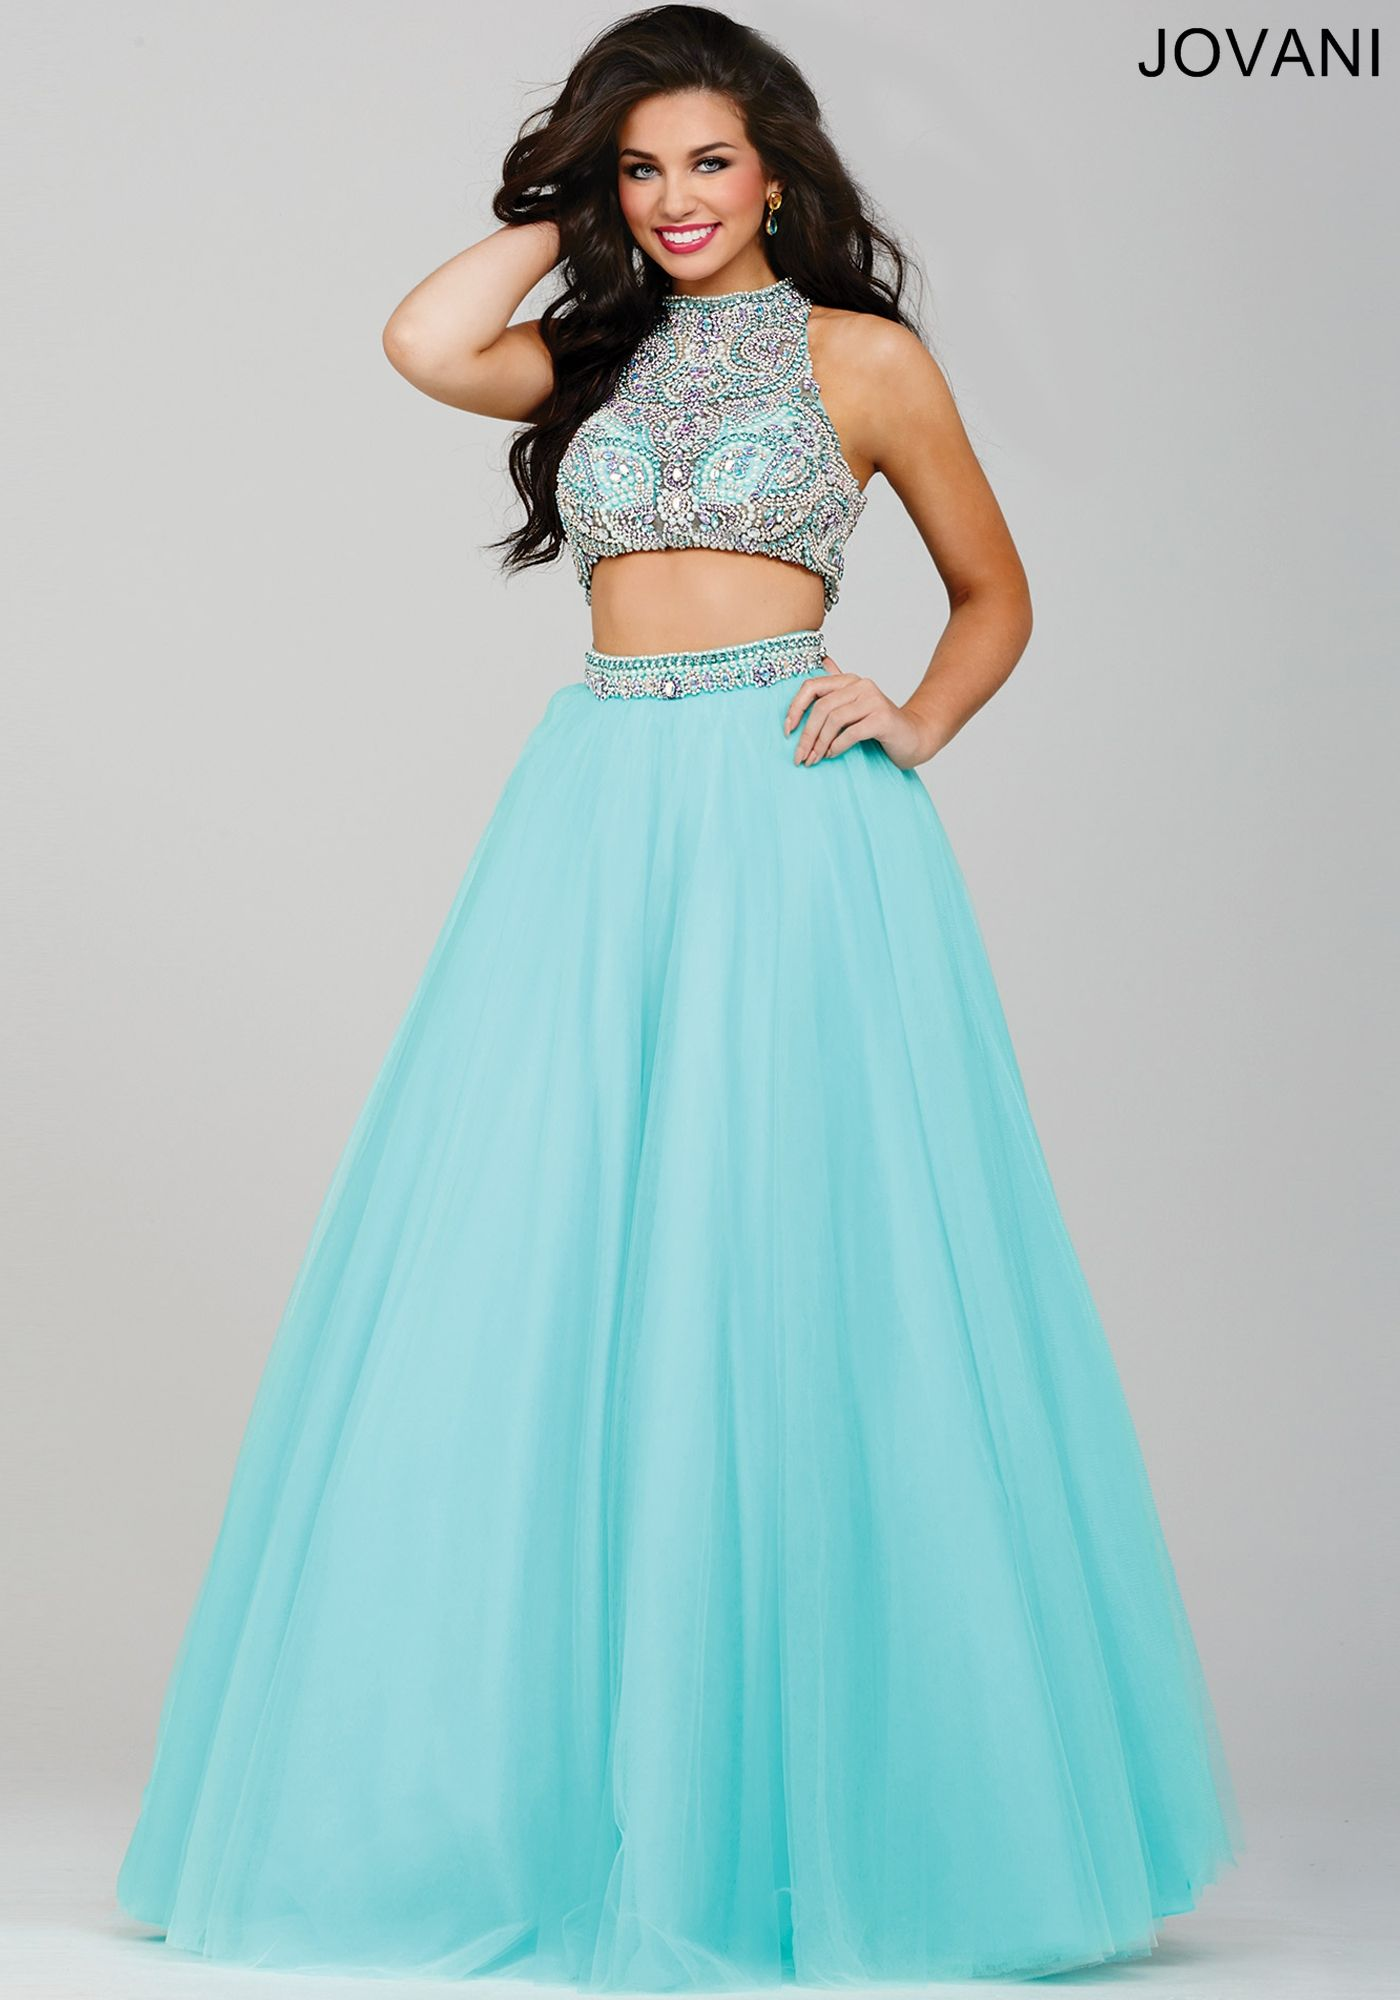 Nueva moda dos piezas night dresses pinterest prom aqua and